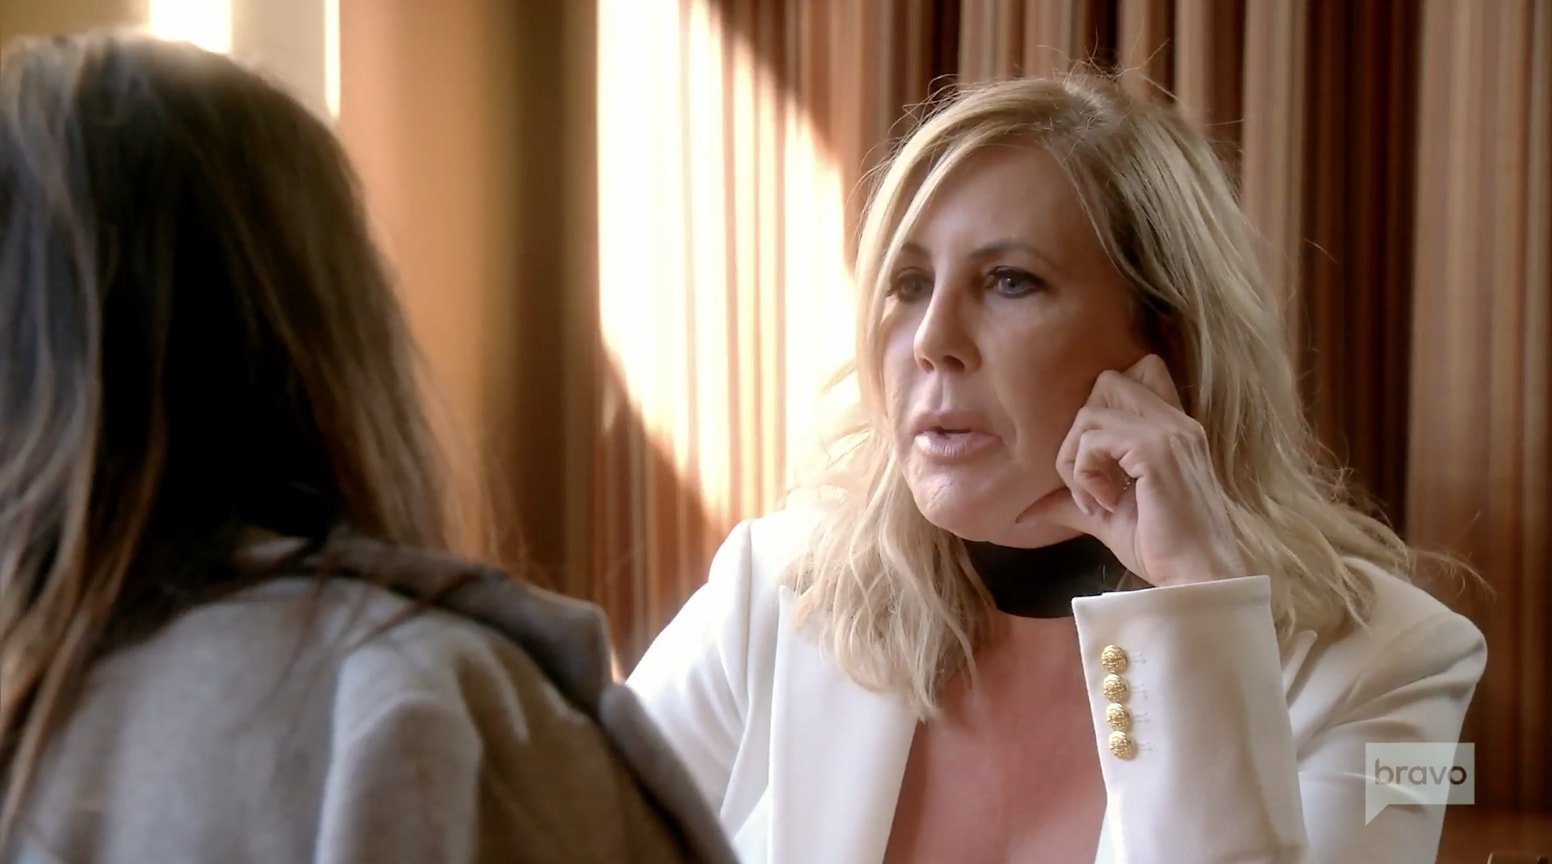 Vicki apologizes to Kelly - insincerely